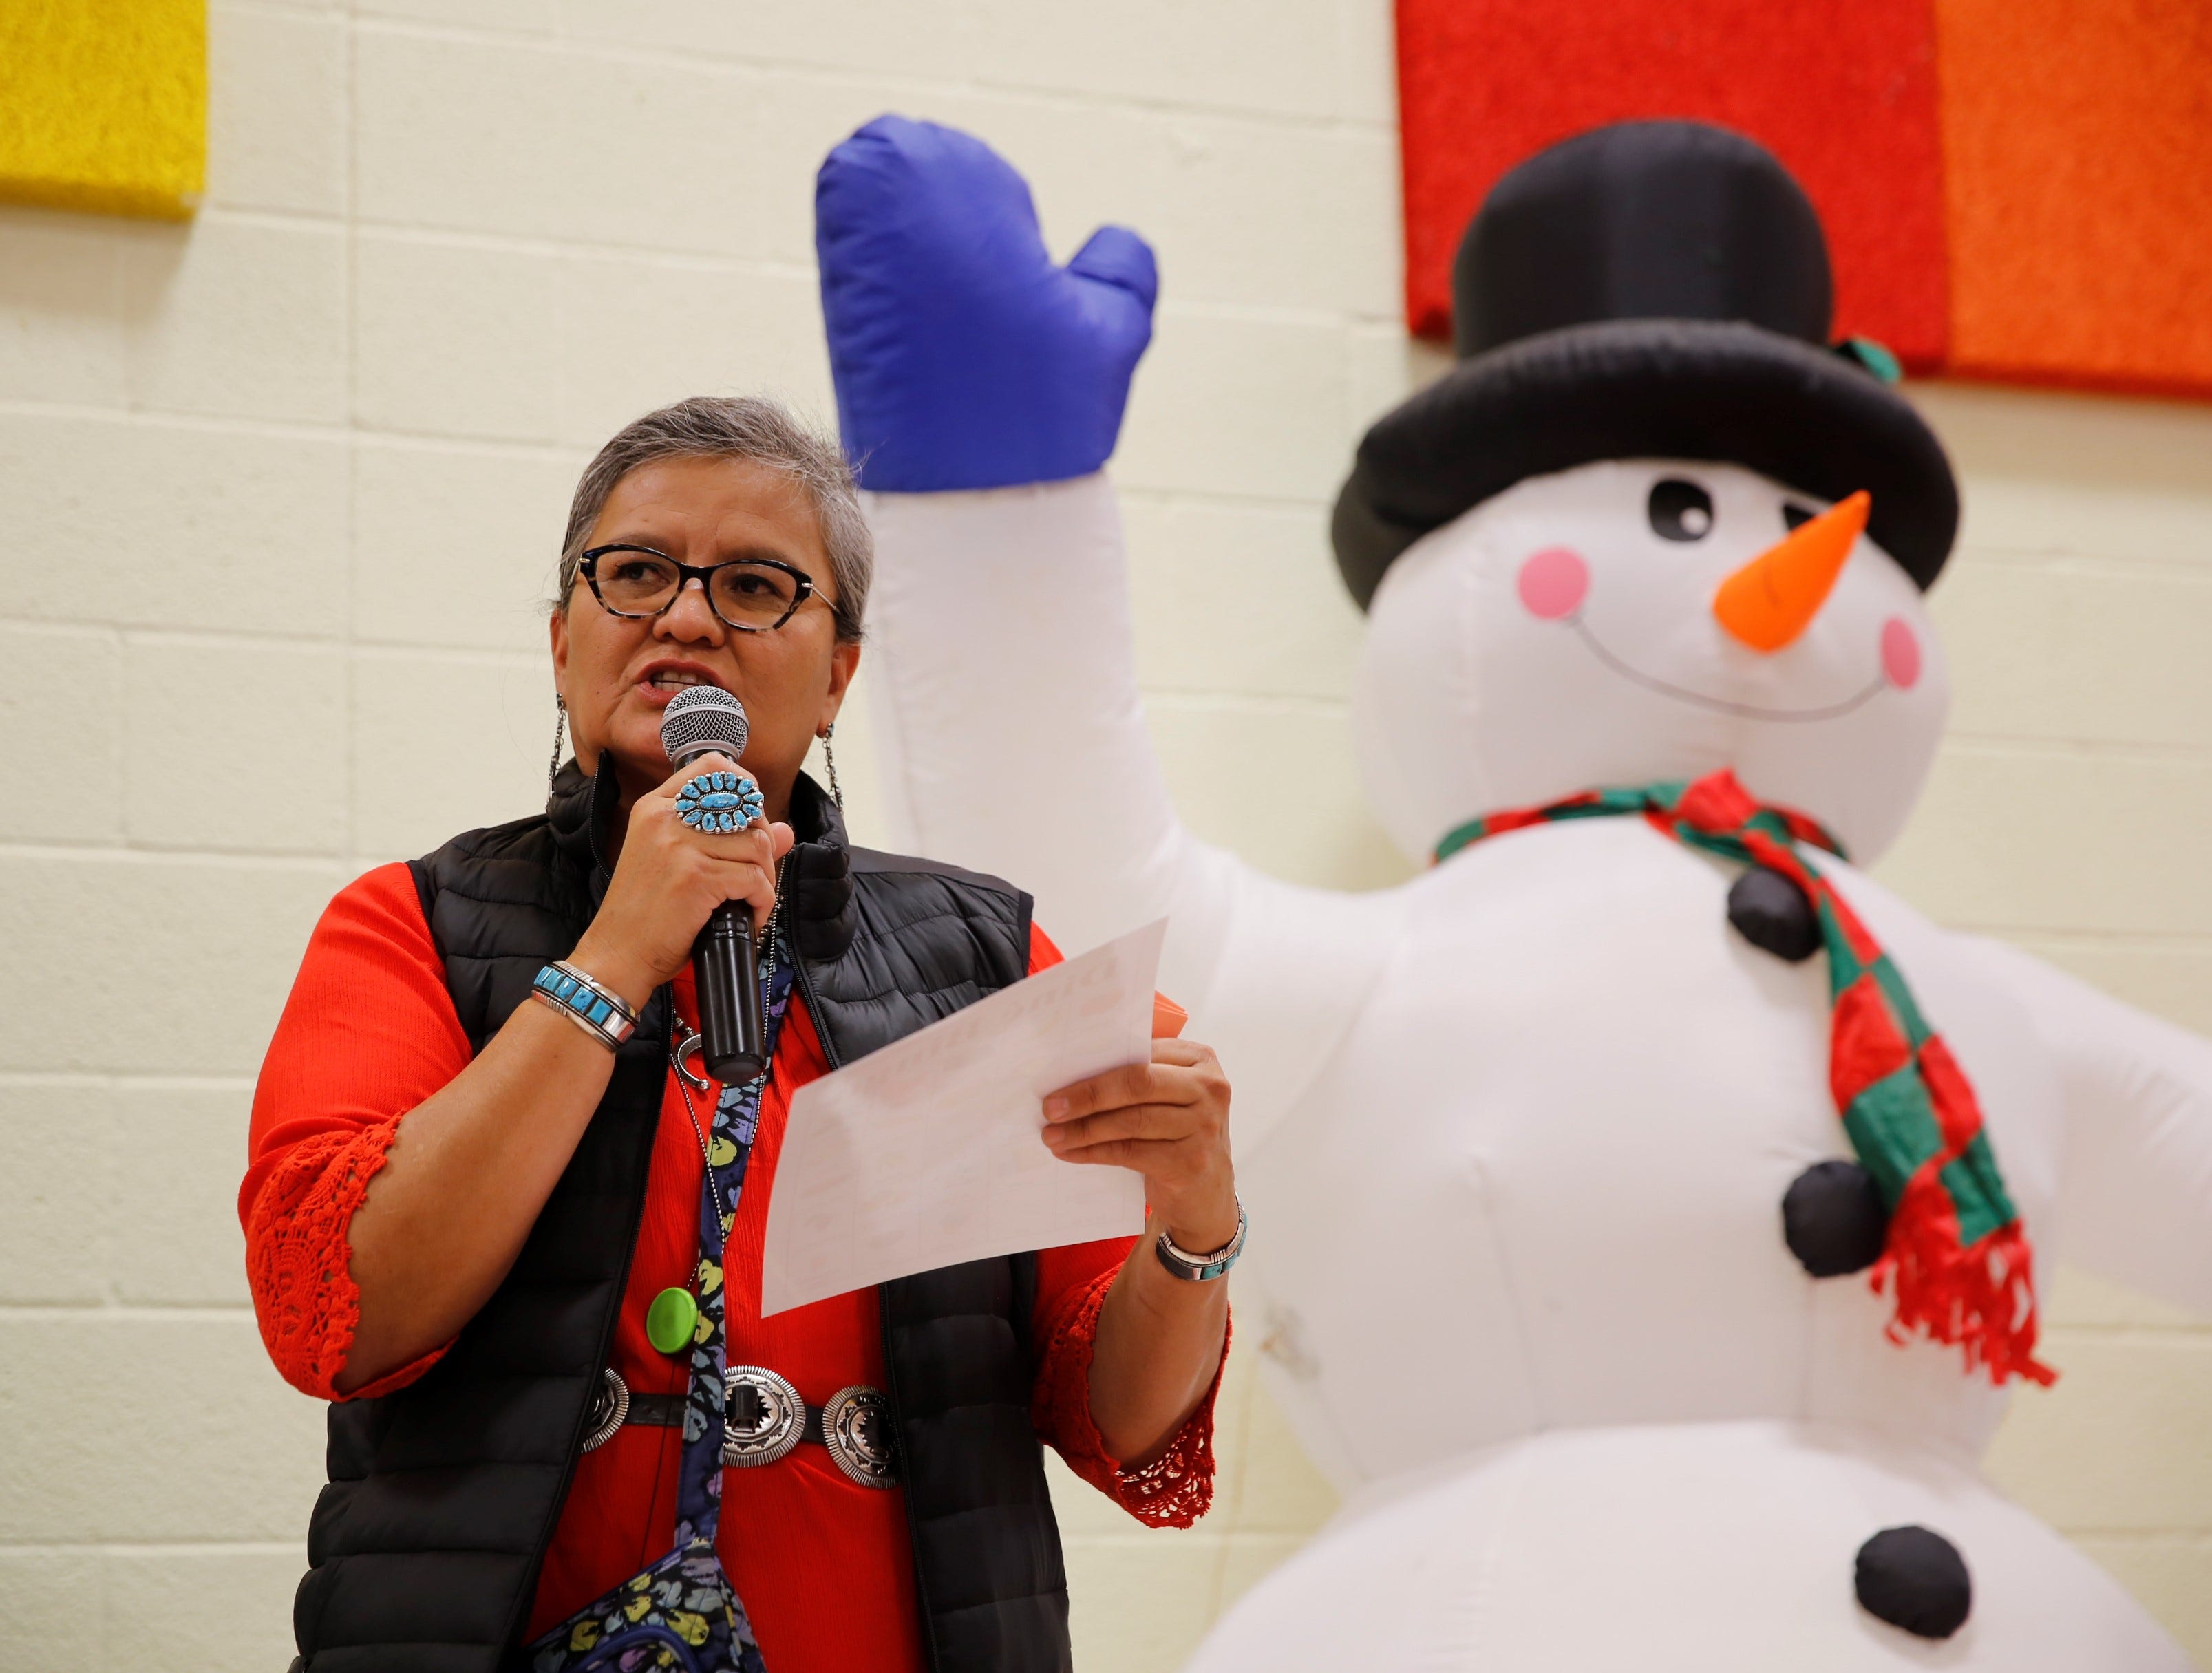 Restoring and Celebrating Family Wellness member Rosalin Smith uses the Navajo language to name food items during a game of bingo during the family winter conference at the Shiprock Youth Complex on Wednesday in Shiprock.